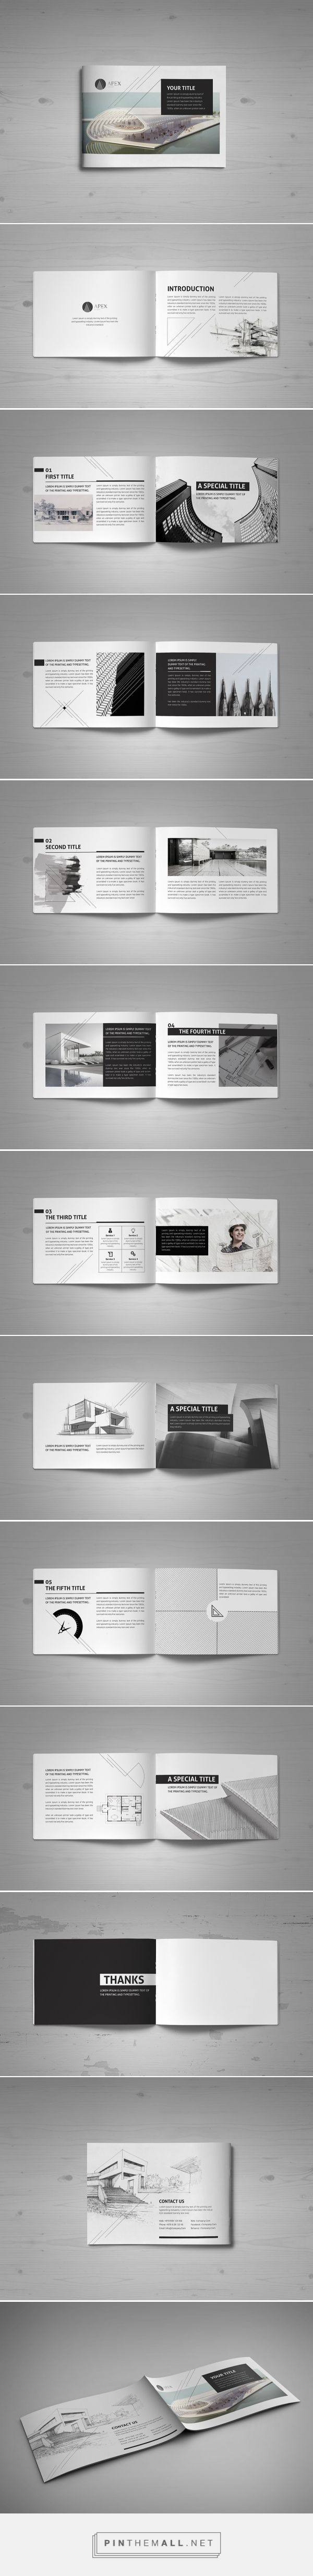 Minimal Modern Black & White Architecture Brochure  on Behance - created via http://pinthemall.net